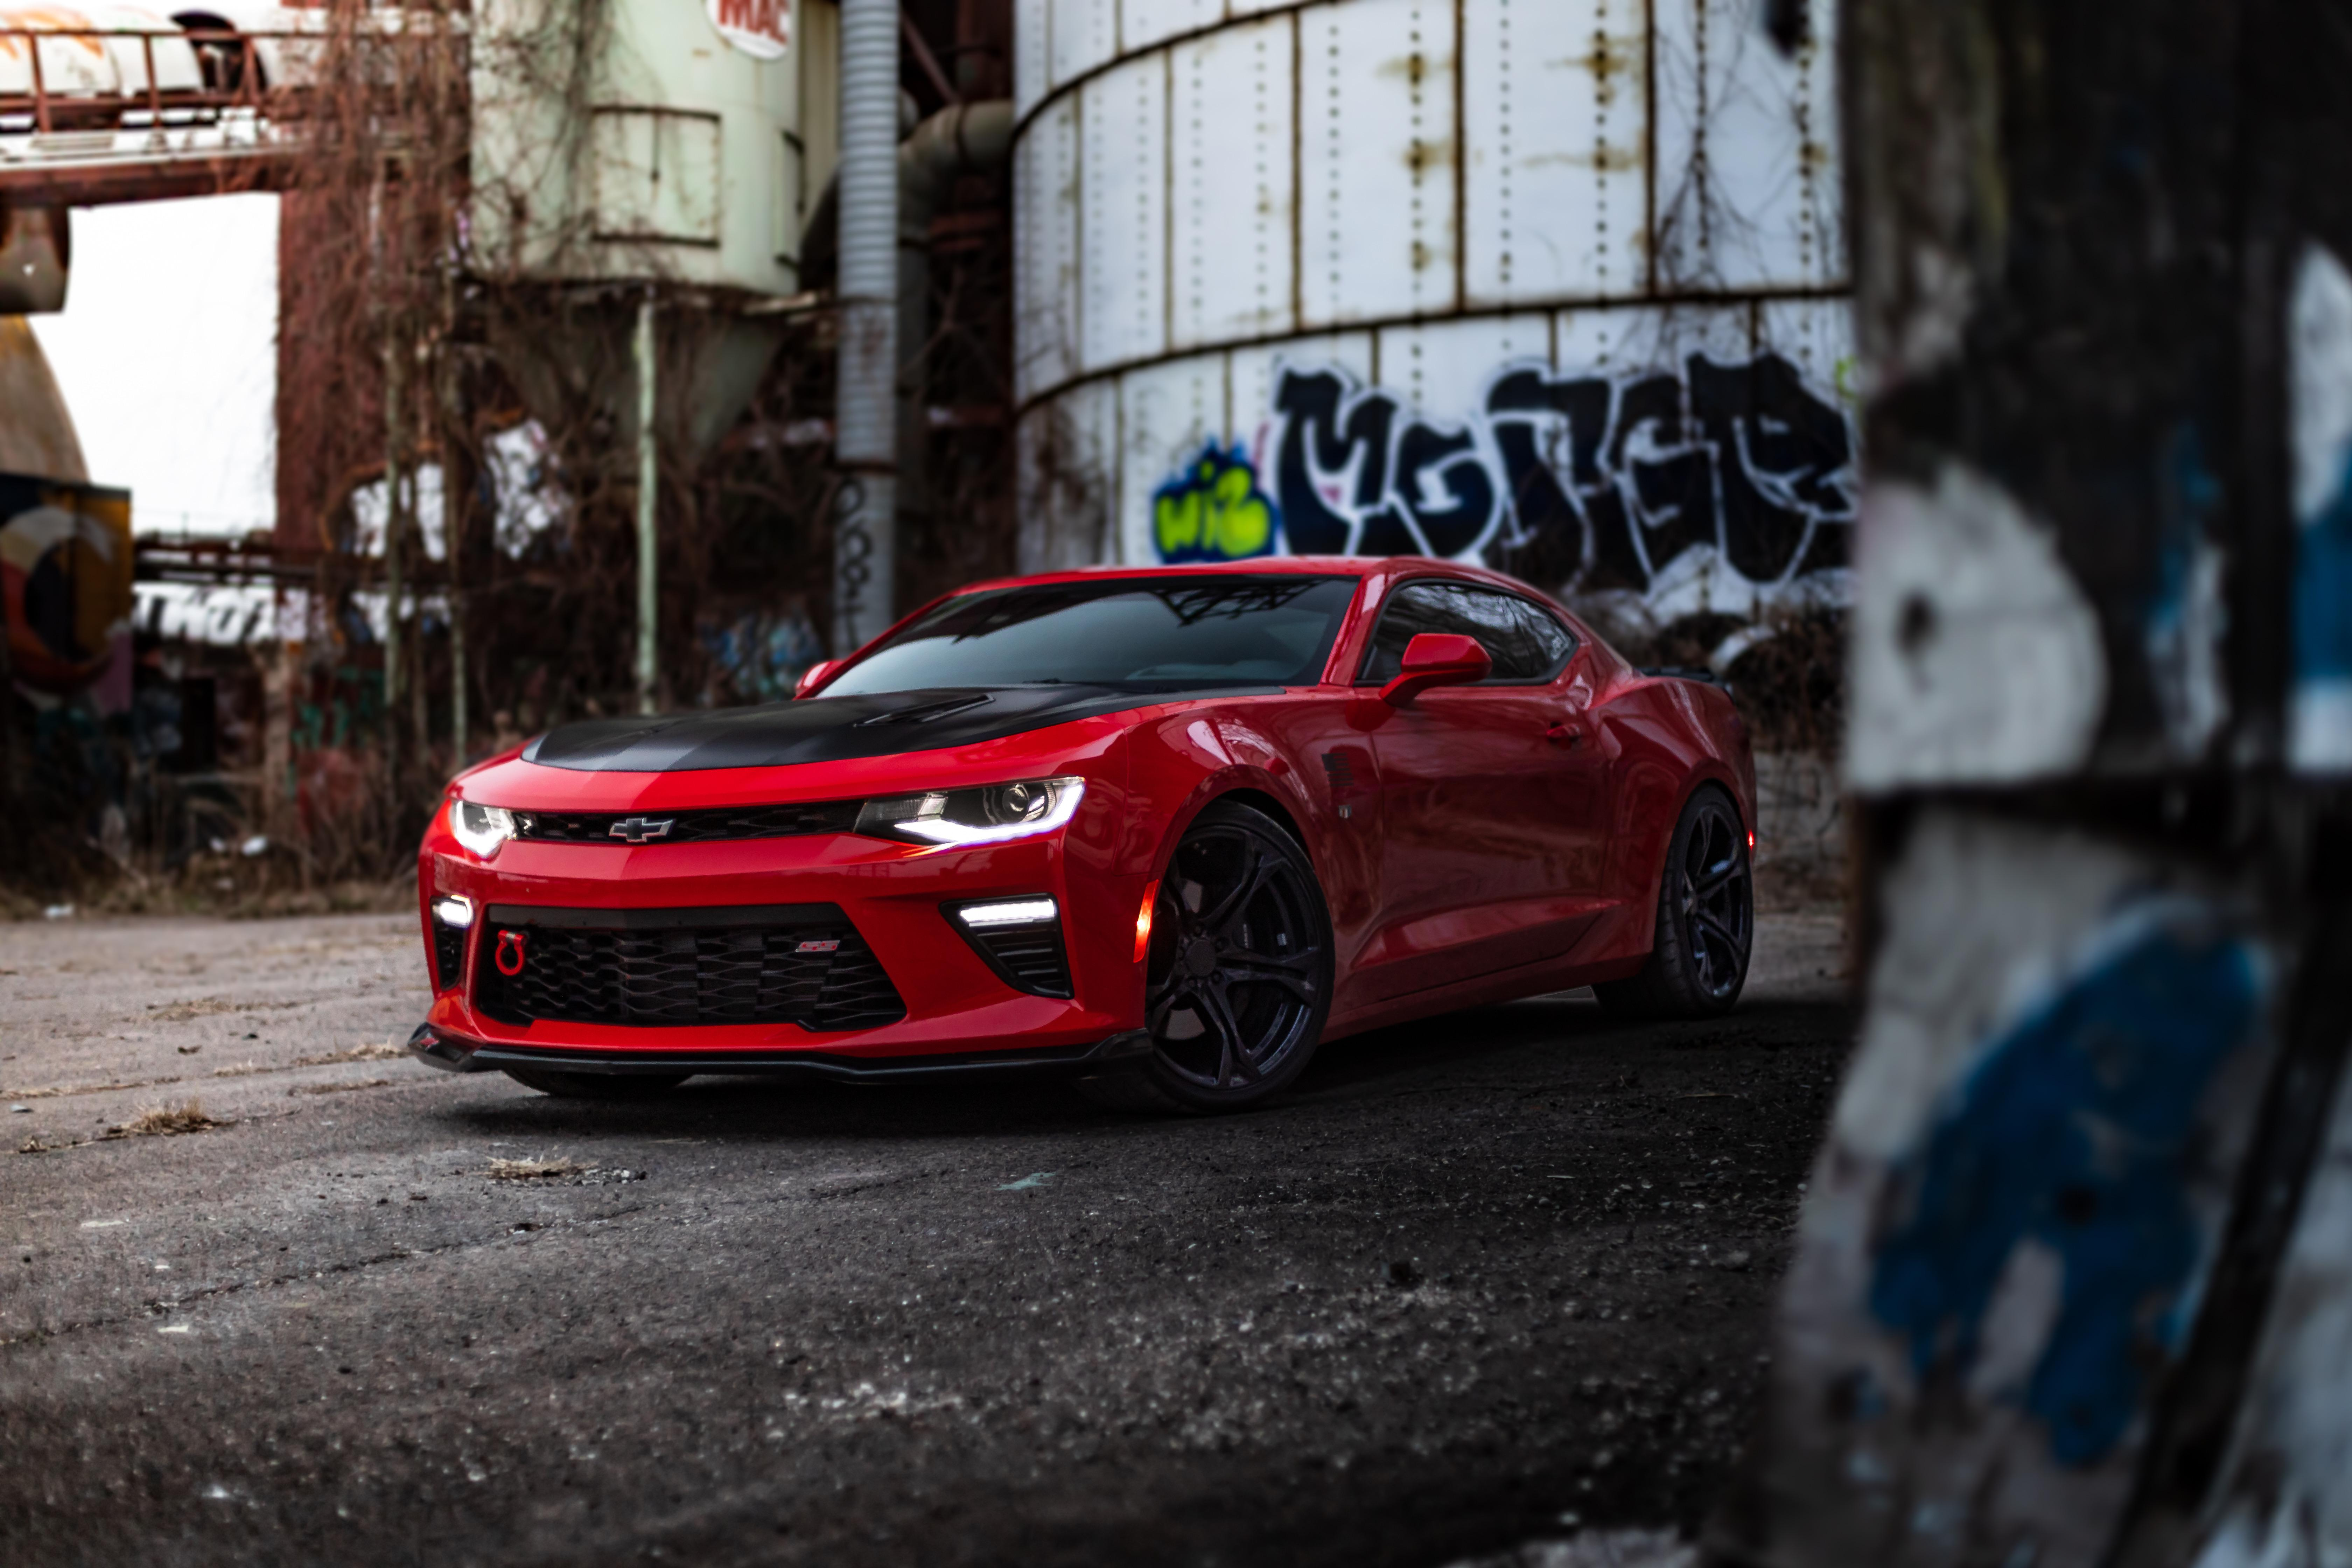 5120x2880 Red Chevrolet Camaro 8k 5k Hd 4k Wallpapers Images Backgrounds Photos And Pictures